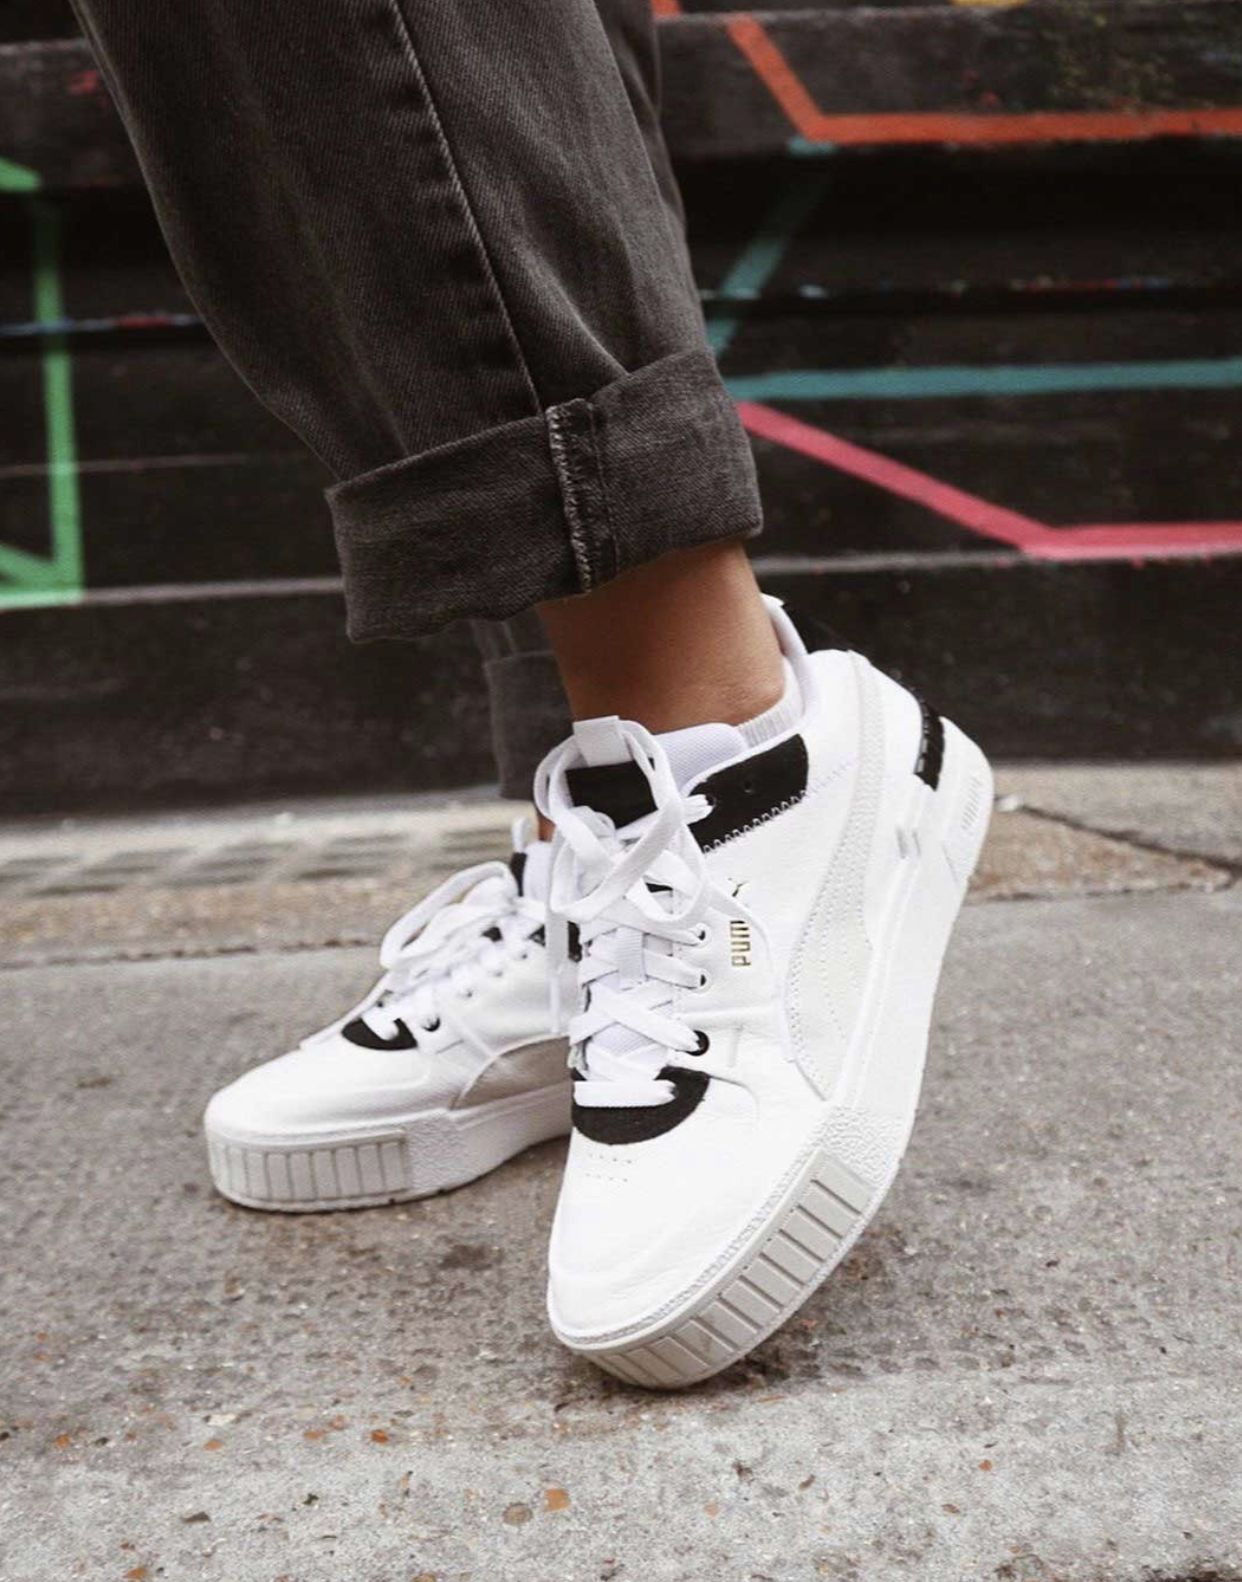 Pin by 𝕔𝕙𝕖𝕣𝕣𝕪 𝕓𝕠𝕞𝕓🍒 on shoes (With images) Womens